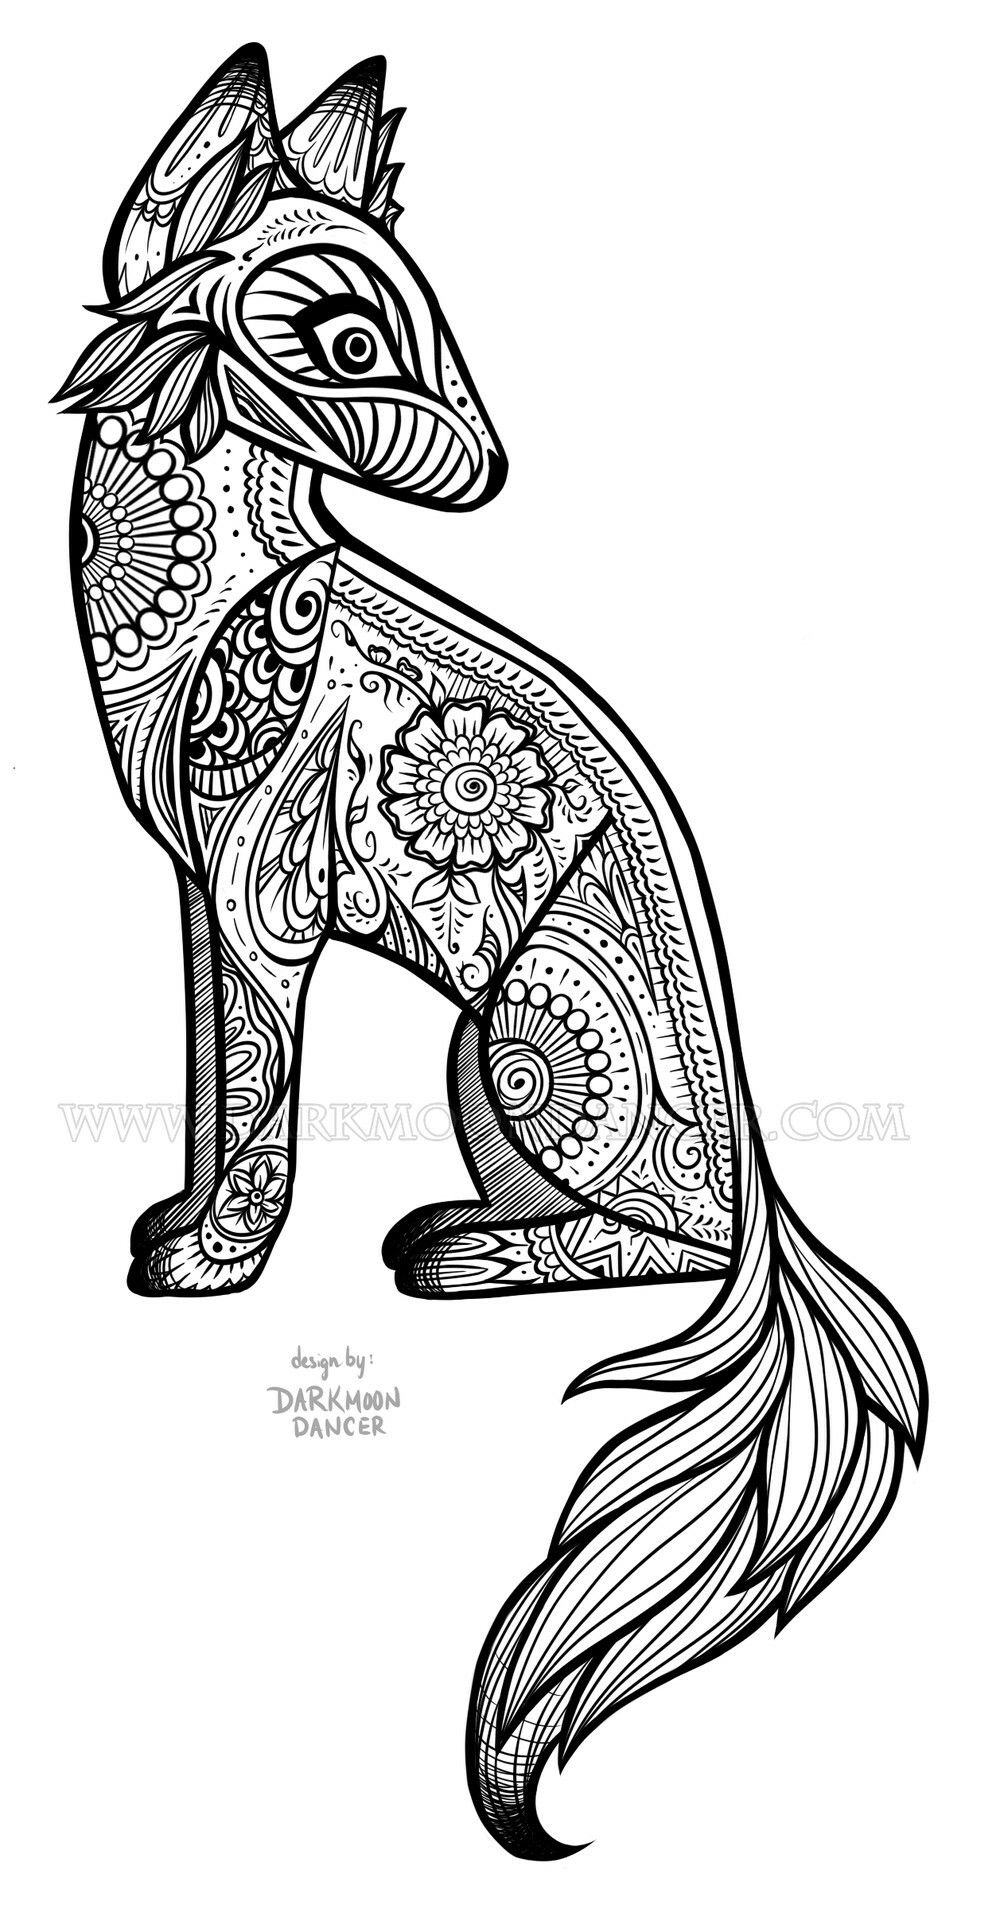 Coyote tattoo | Tats and other cool stuff | Pinterest | Coyote ...